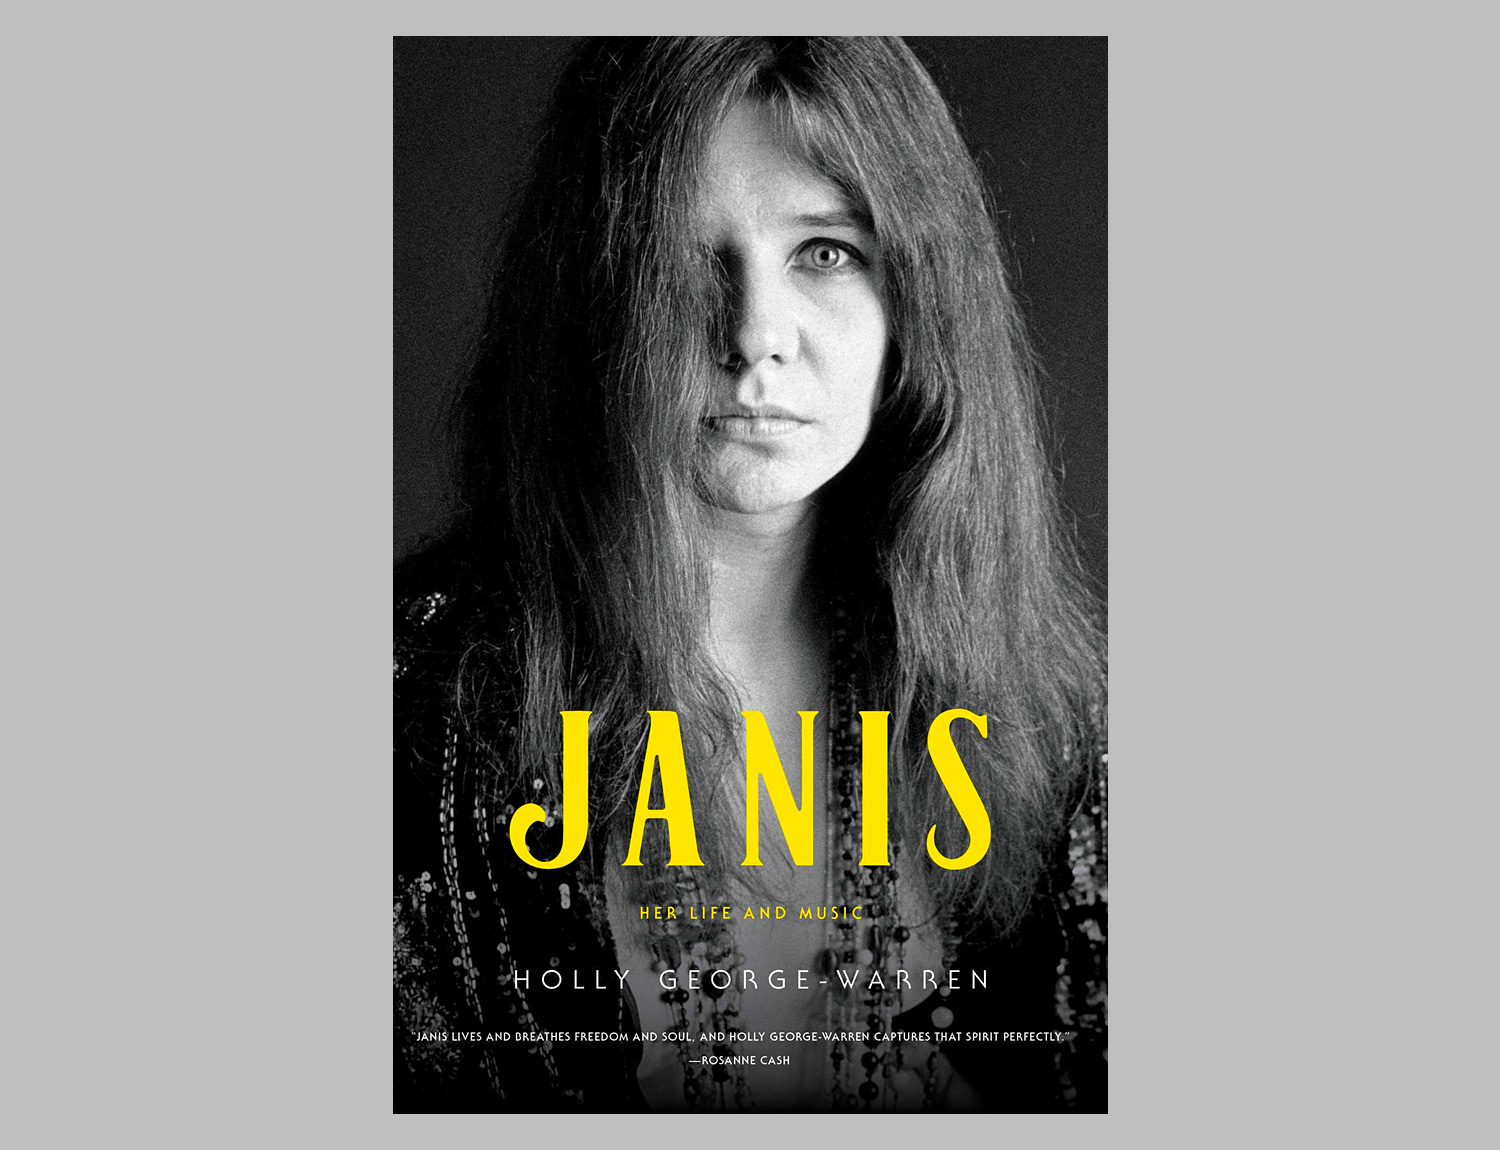 Janis: Her Life & Music at werd.com